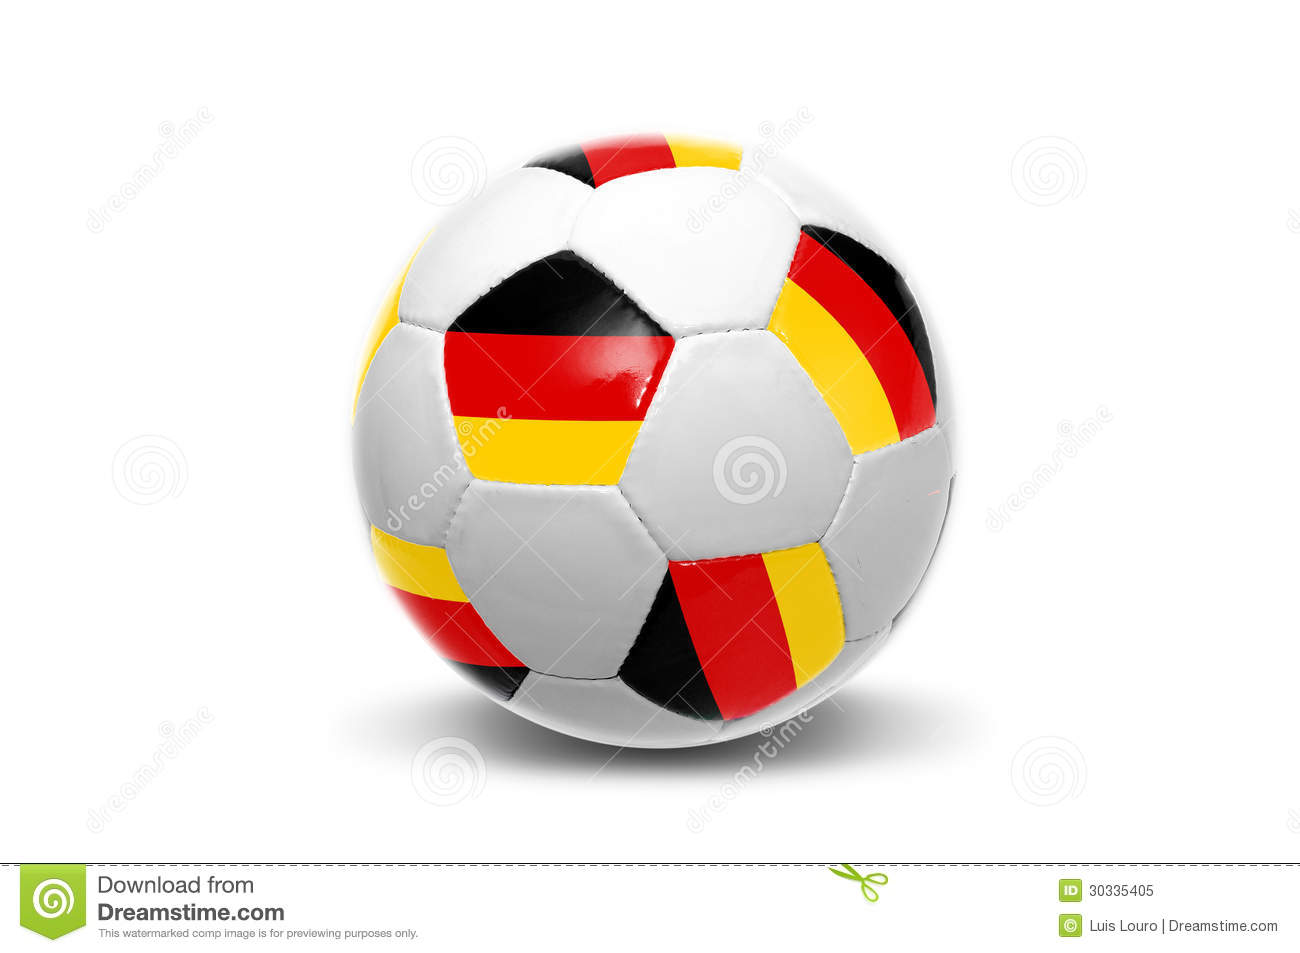 ballon de football allemand de drapeau image stock image du cuvette quipe 30335405. Black Bedroom Furniture Sets. Home Design Ideas